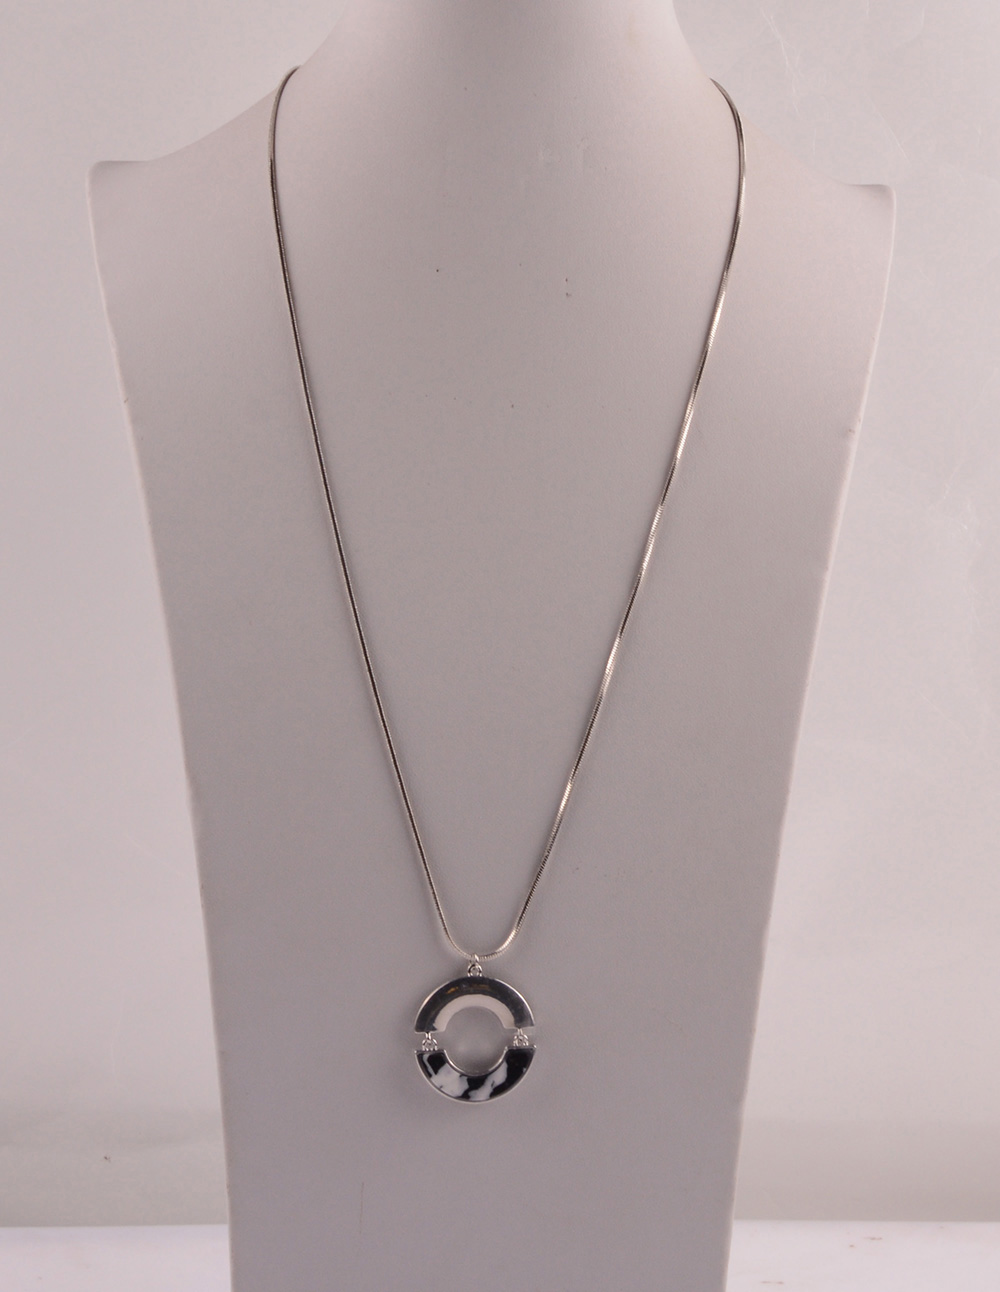 907531 Lady Long Necklace